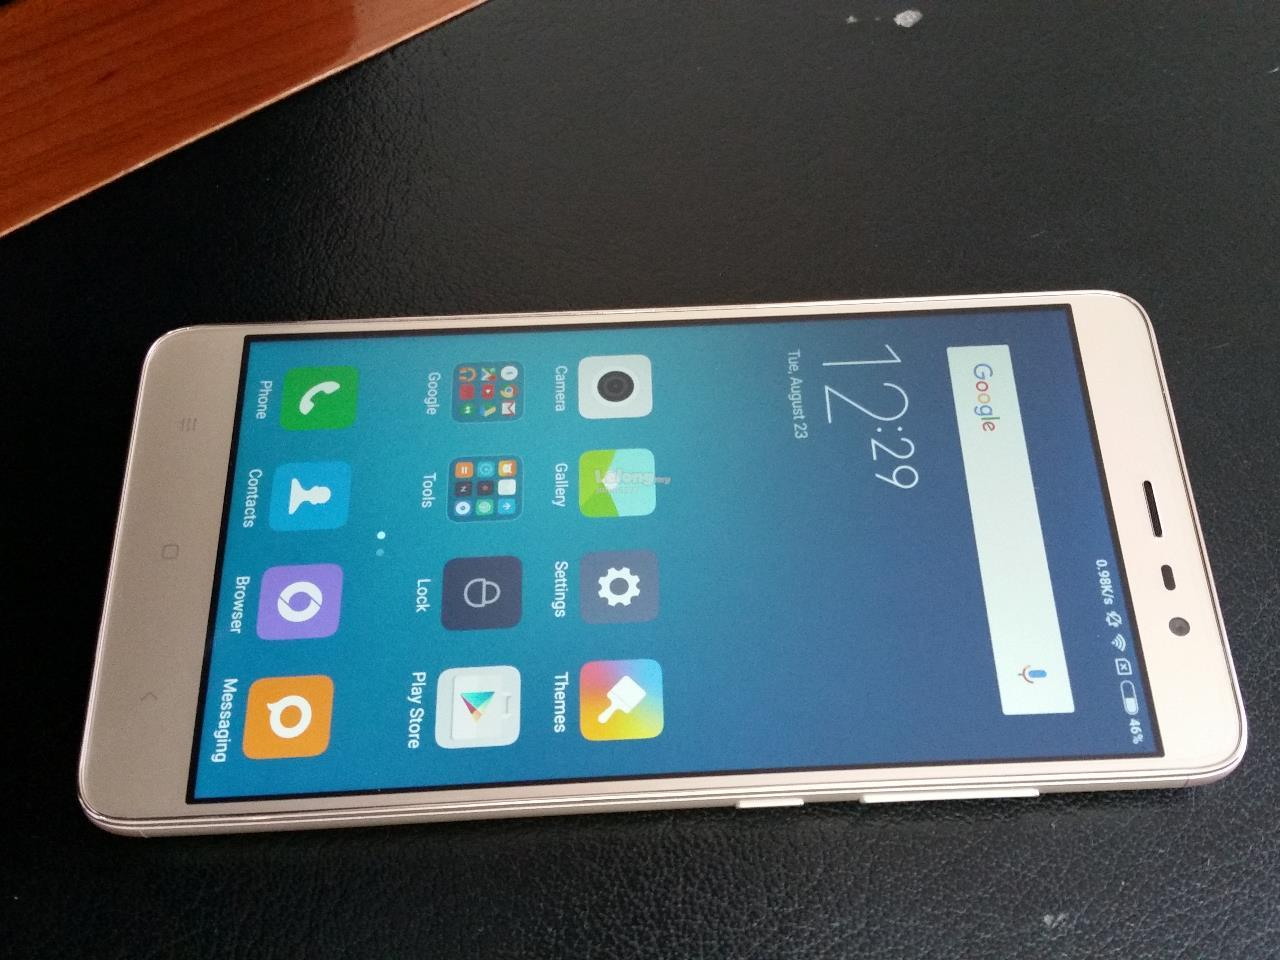 Xiaomi Redmi Note 3 Pro 32gb Gold 3g End 9 4 2016 215 Pm 32 Gb 3gb Rom Snapdragon 650